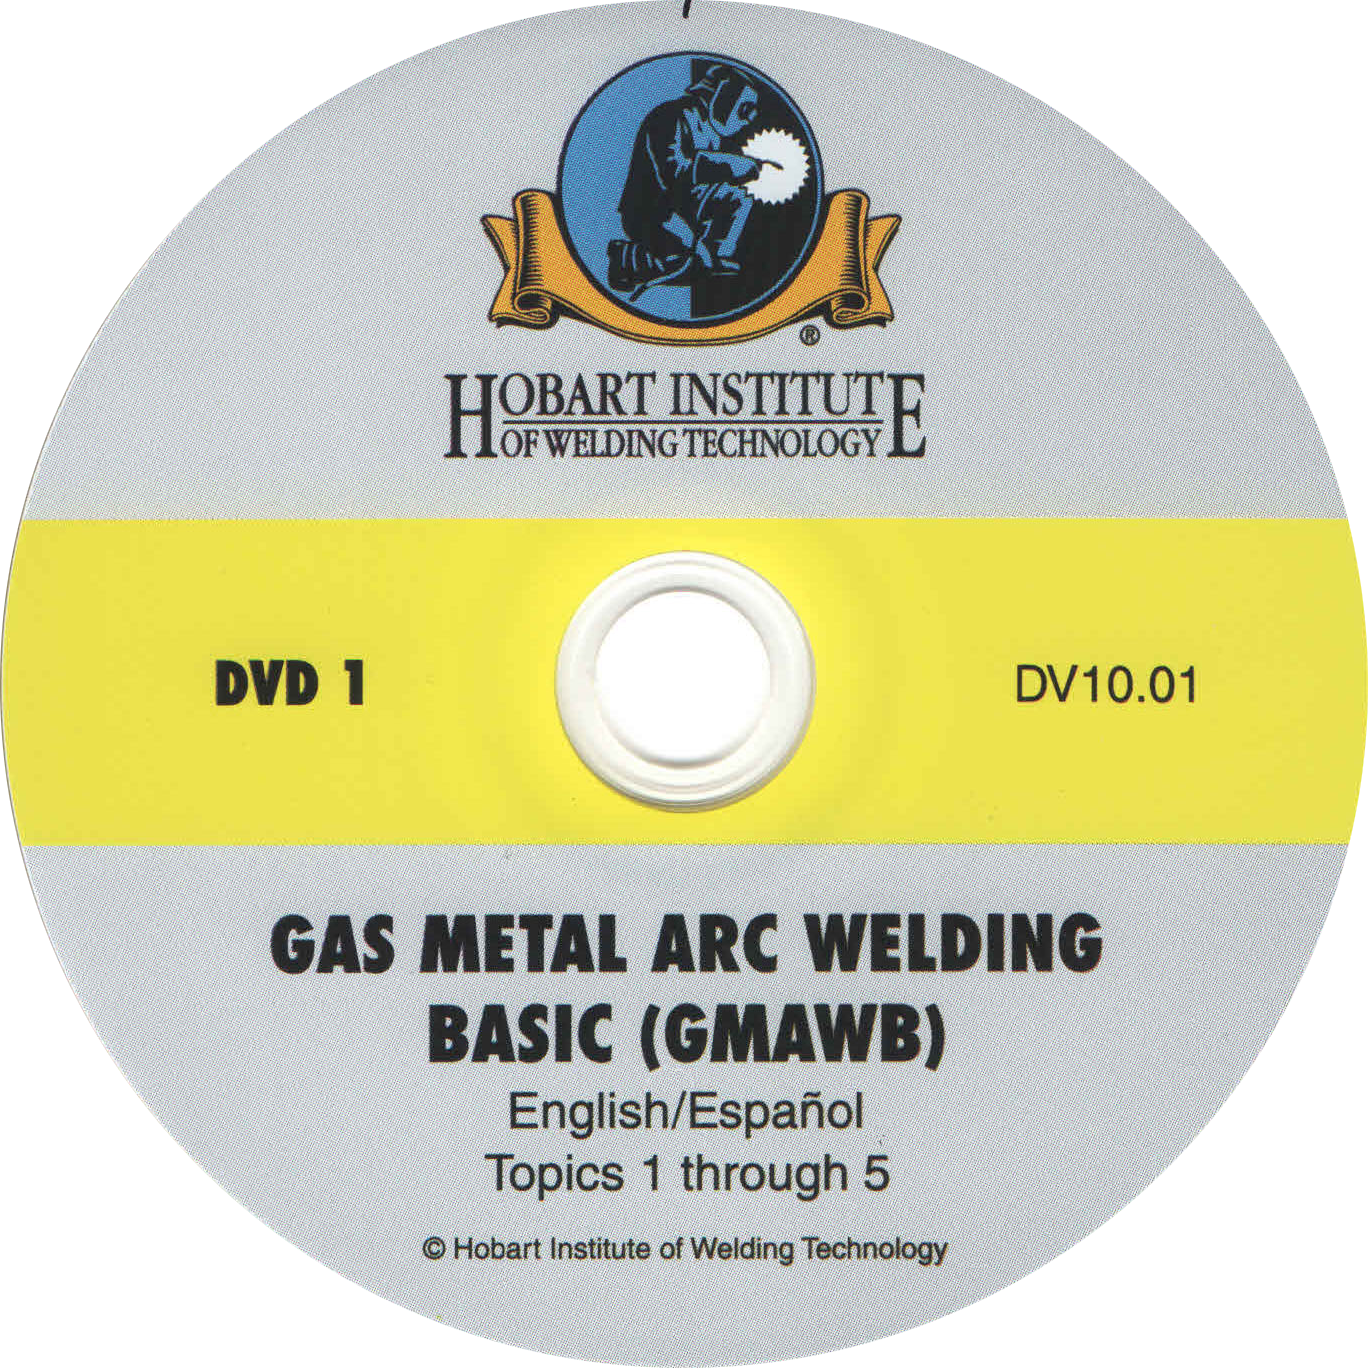 Gas Metal Arc Welding Basic, Advanced, or Pipe